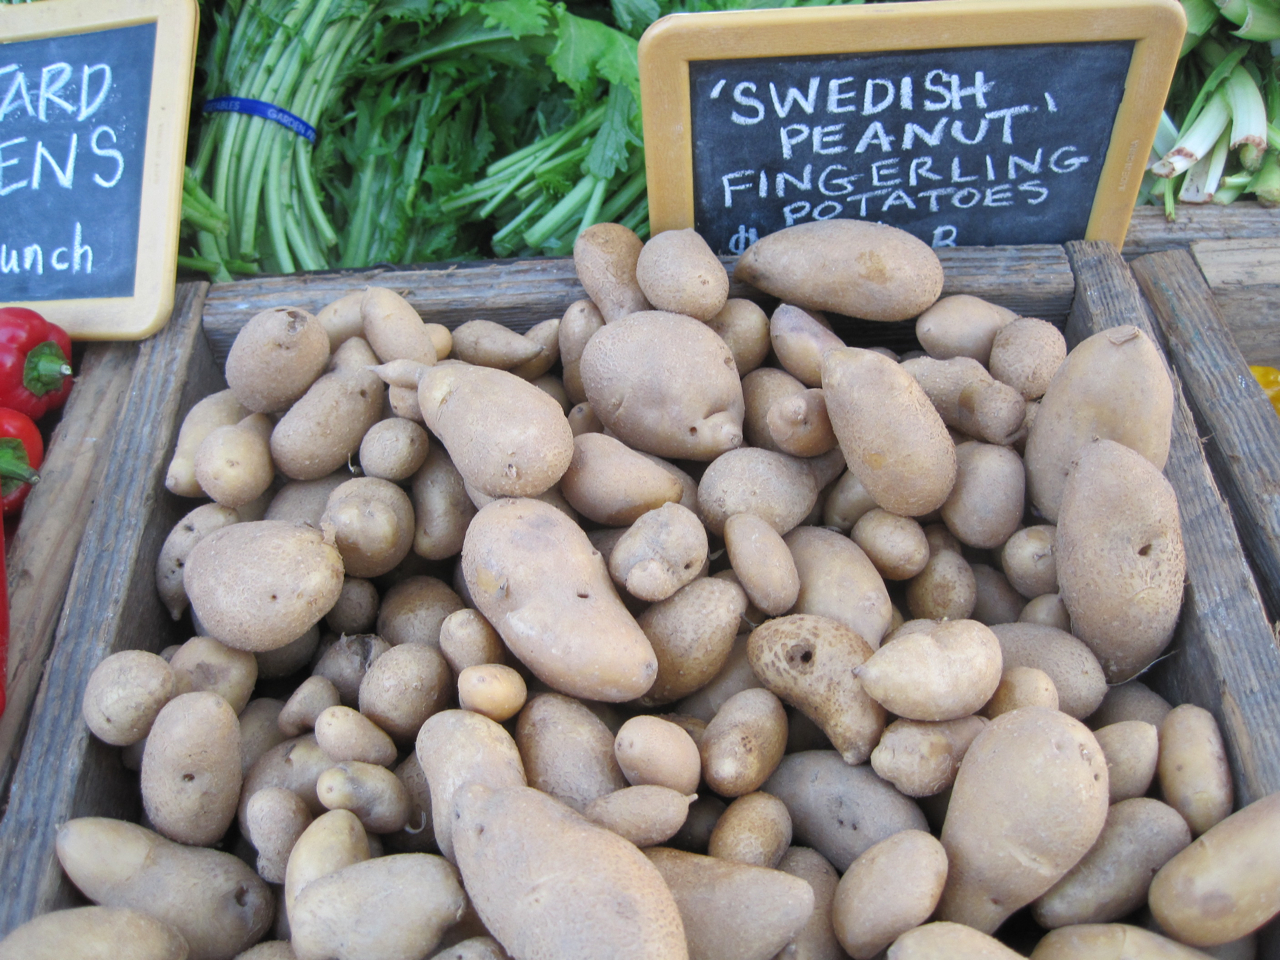 Swedish Peanut Potatoes